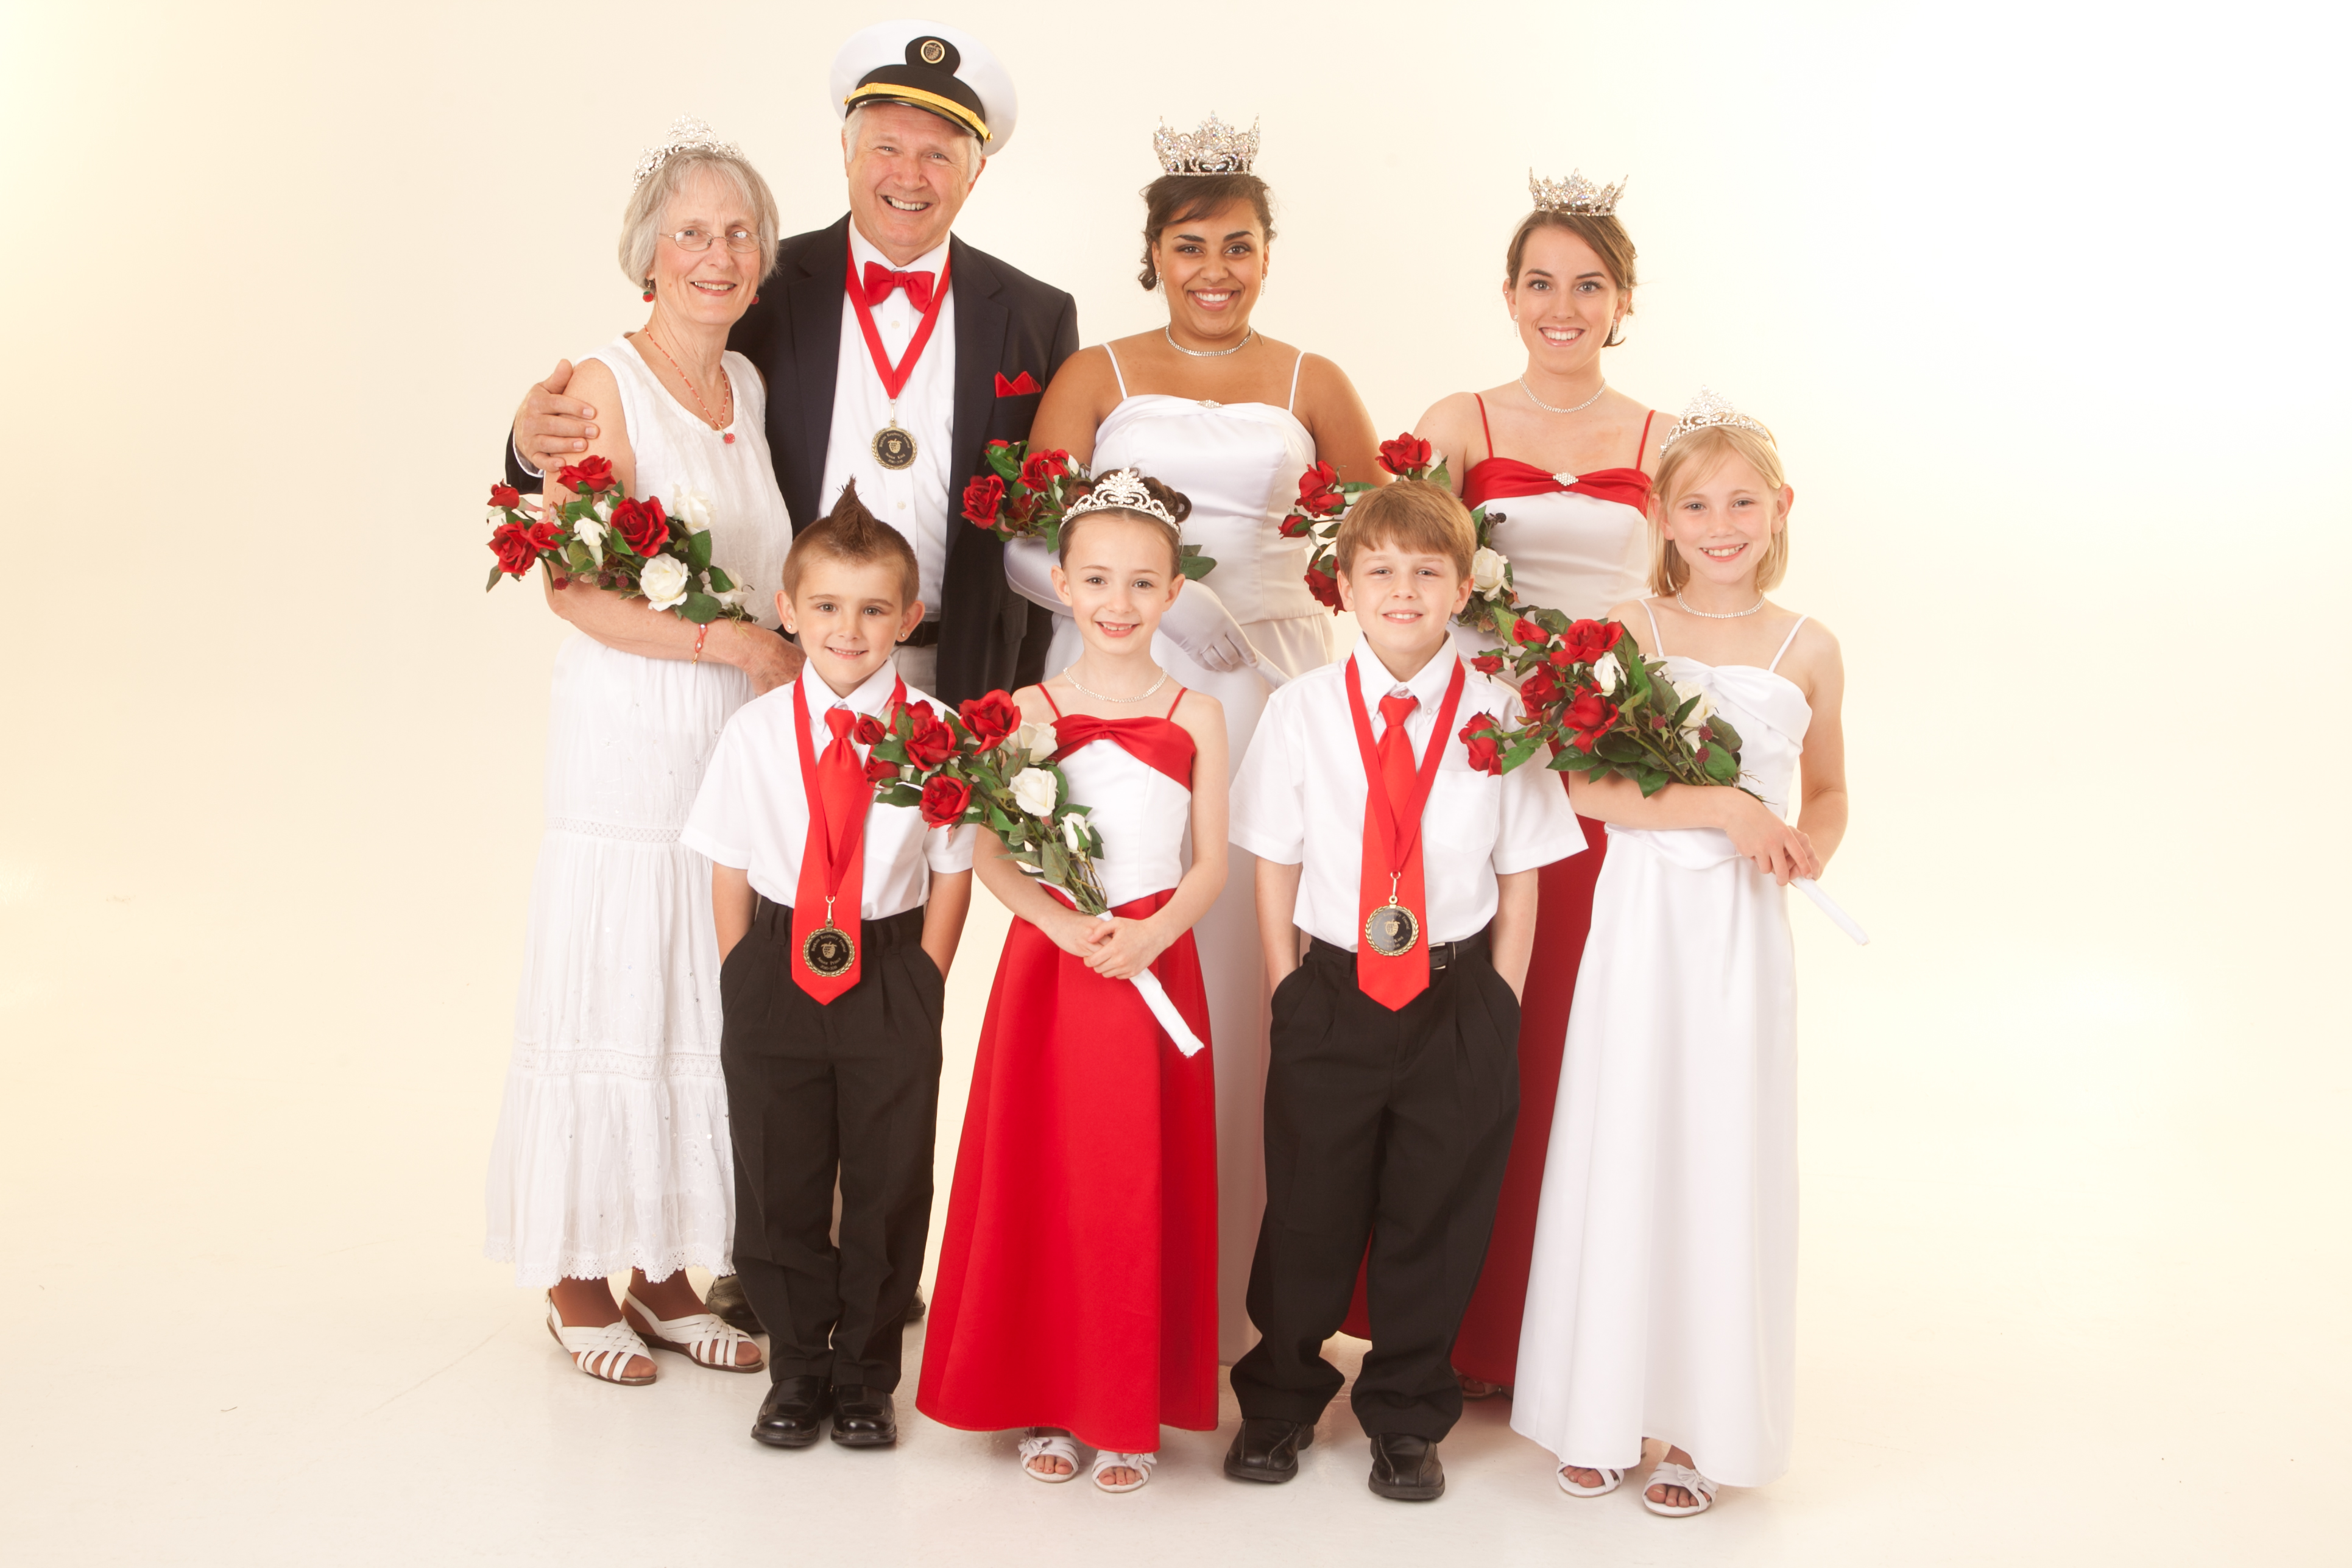 2010-2011 Royal Family photo